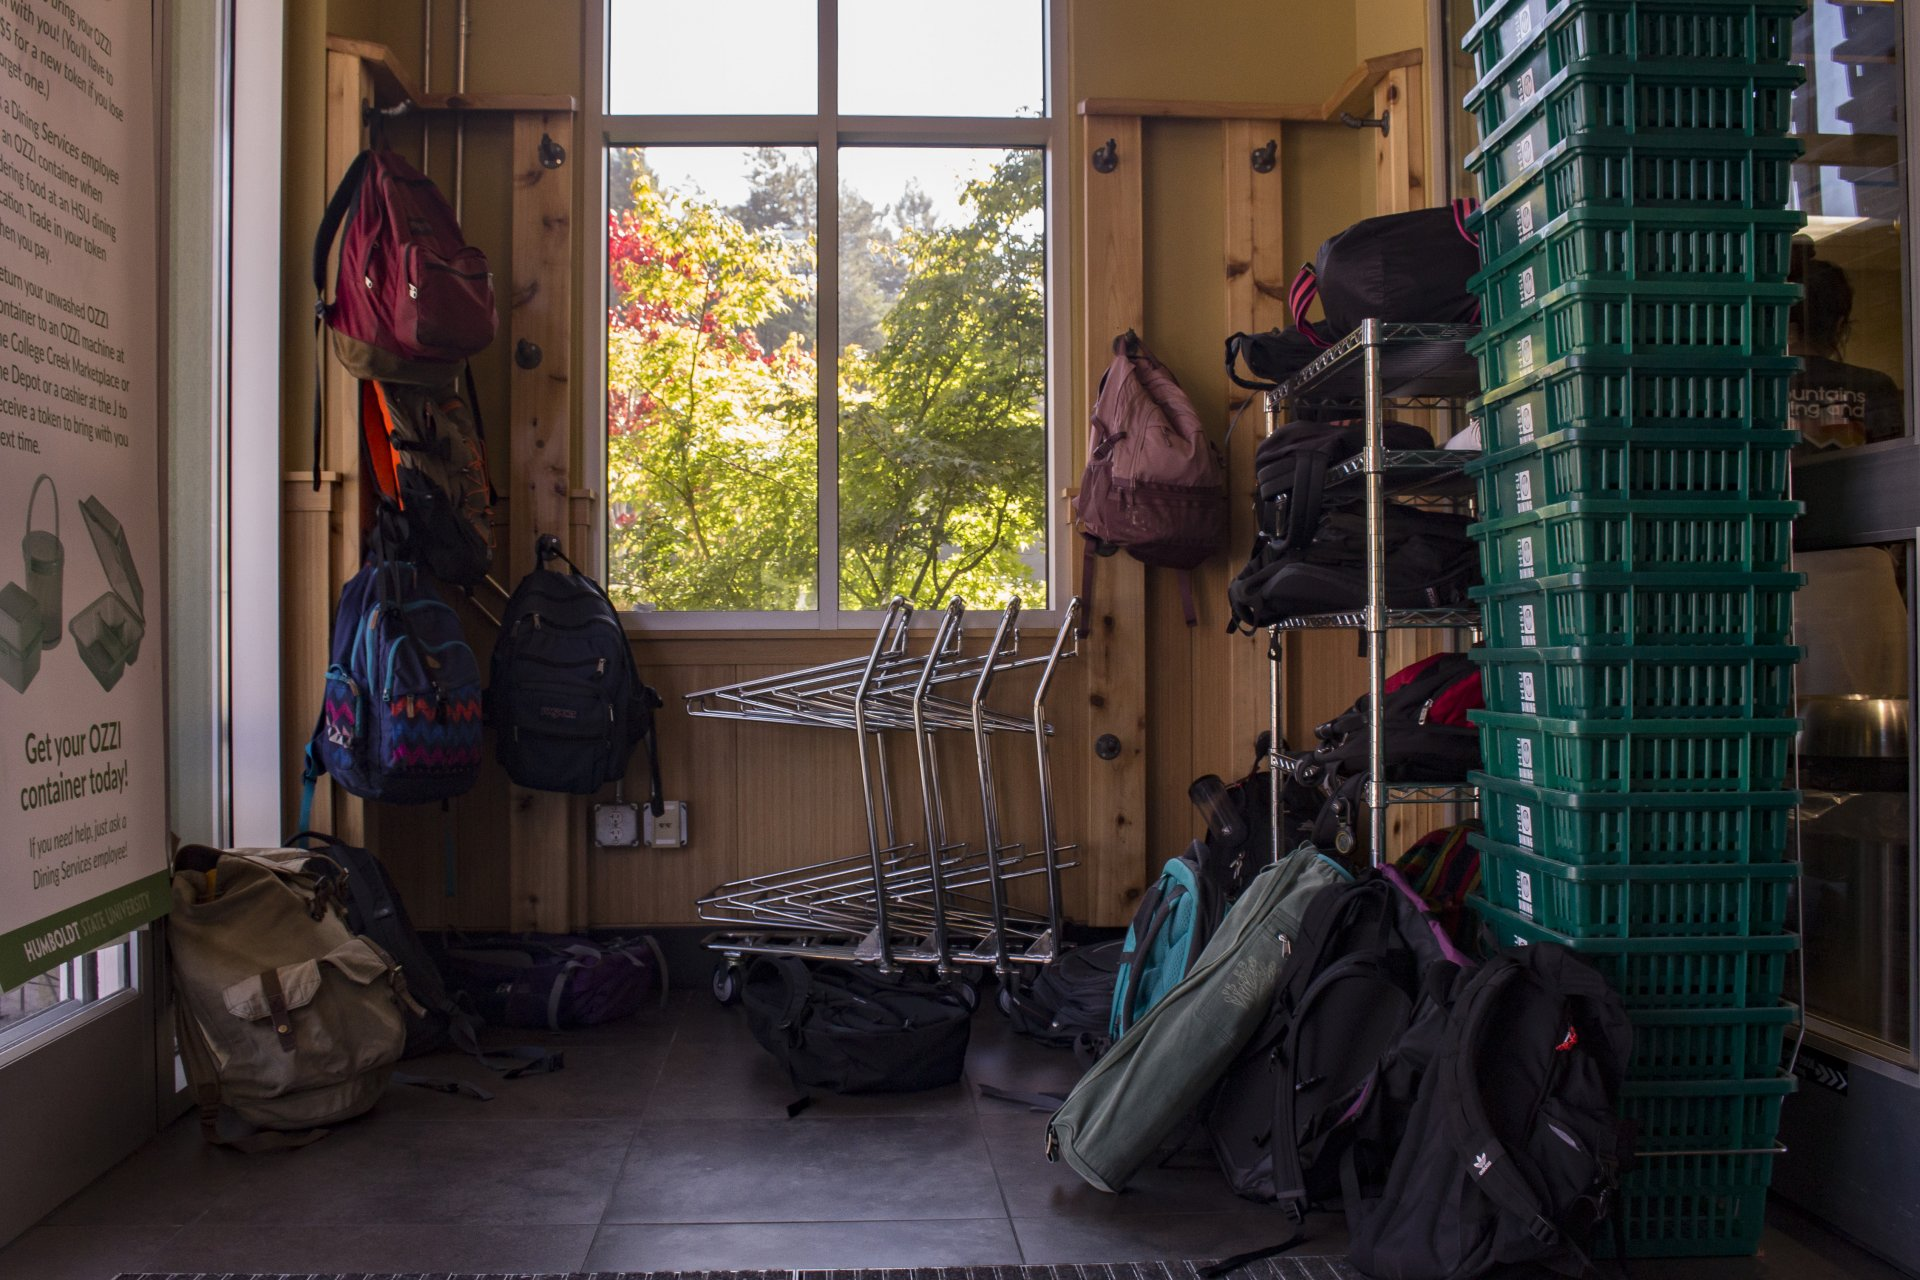 The College Creek Marketplace has a rule requiring students to leave their backpacks vulnerably at the door in attempt to discourage theft. | Photo by Nick Kemper